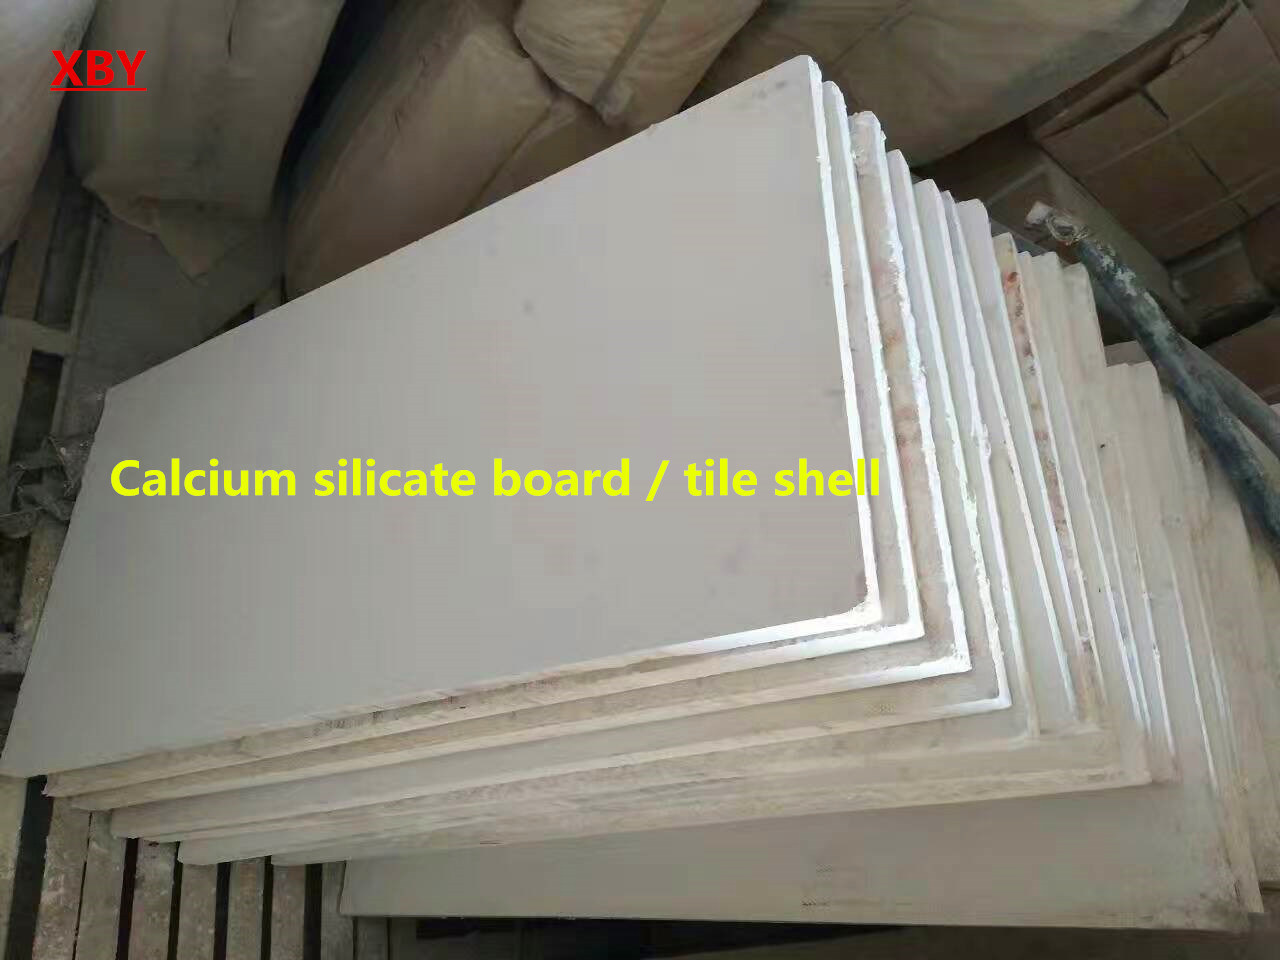 China calcium silicate board with no asbestos ceiling panel acoustic china calcium silicate board with no asbestos ceiling panel acoustic panel china calcium silicate board with no asbestos calcium silicate board dailygadgetfo Images